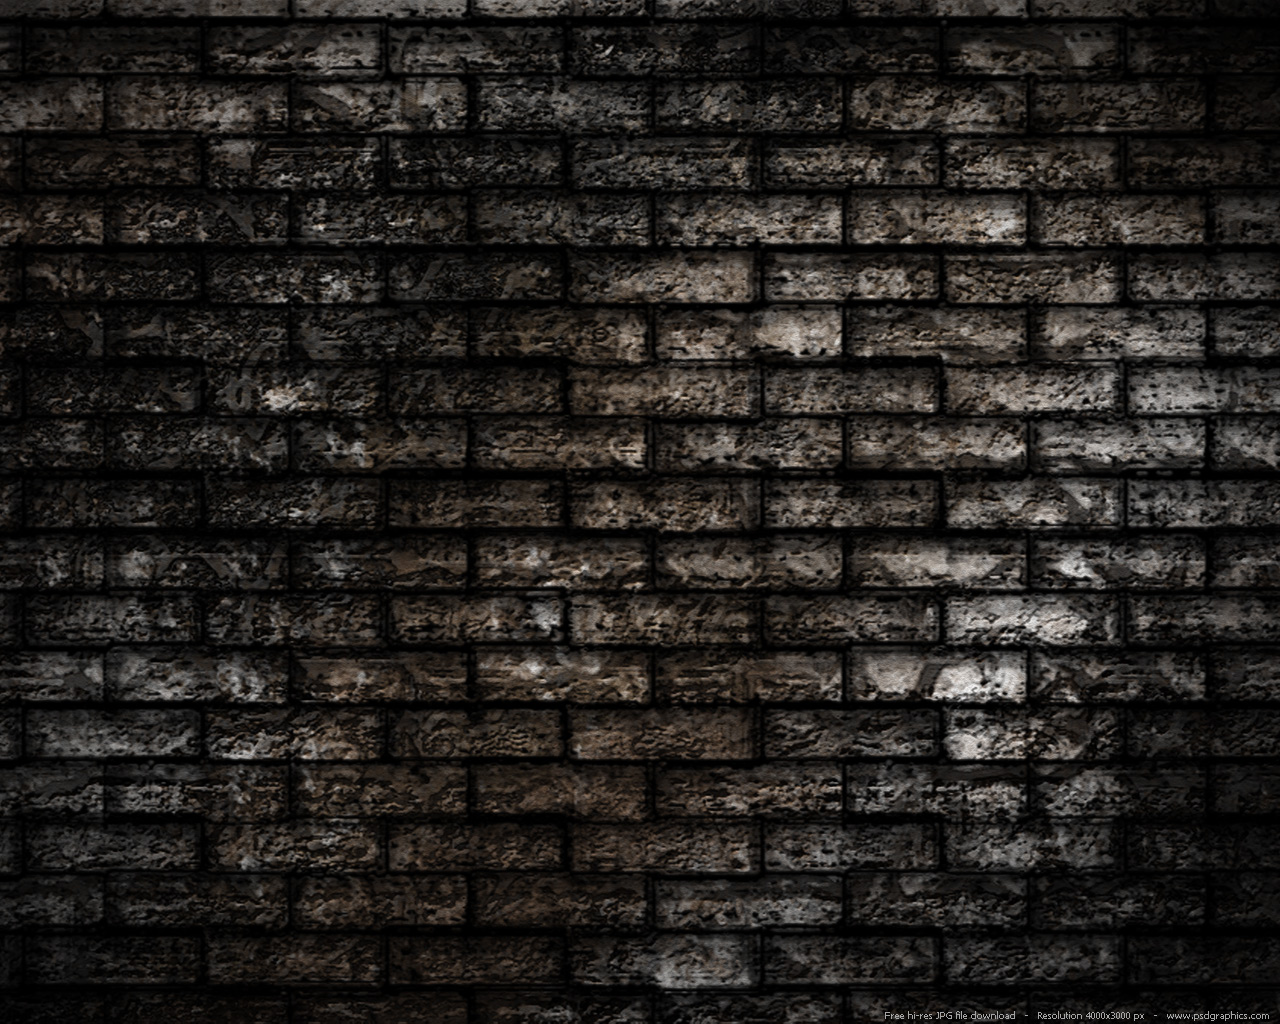 Grunge Brick Wall Background Psdgraphics